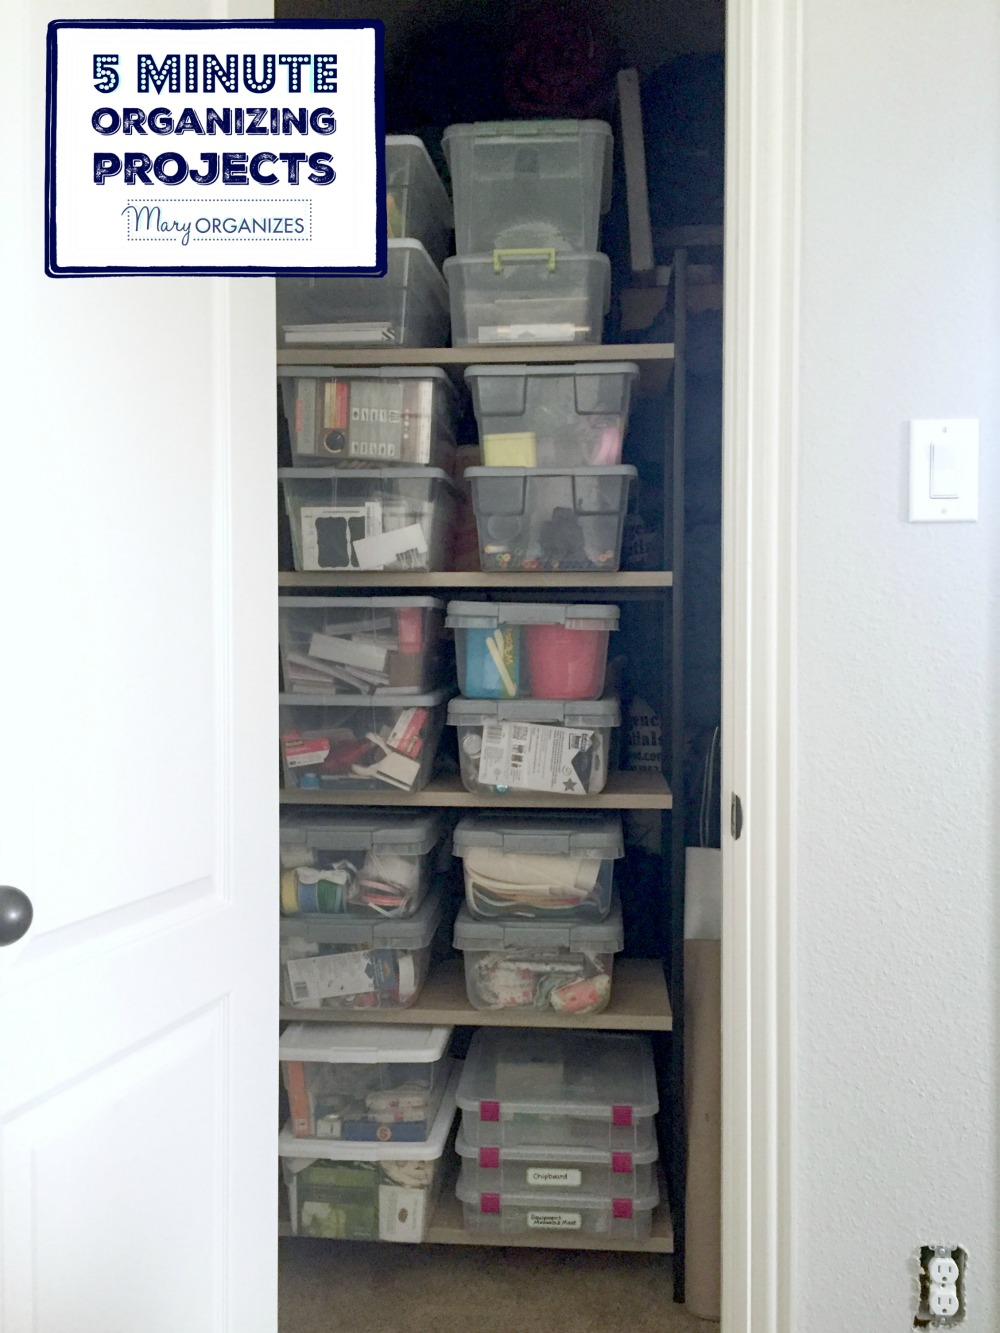 organizing-my-monica-closet-in-the-studio-5-minute-organizing-projects-after